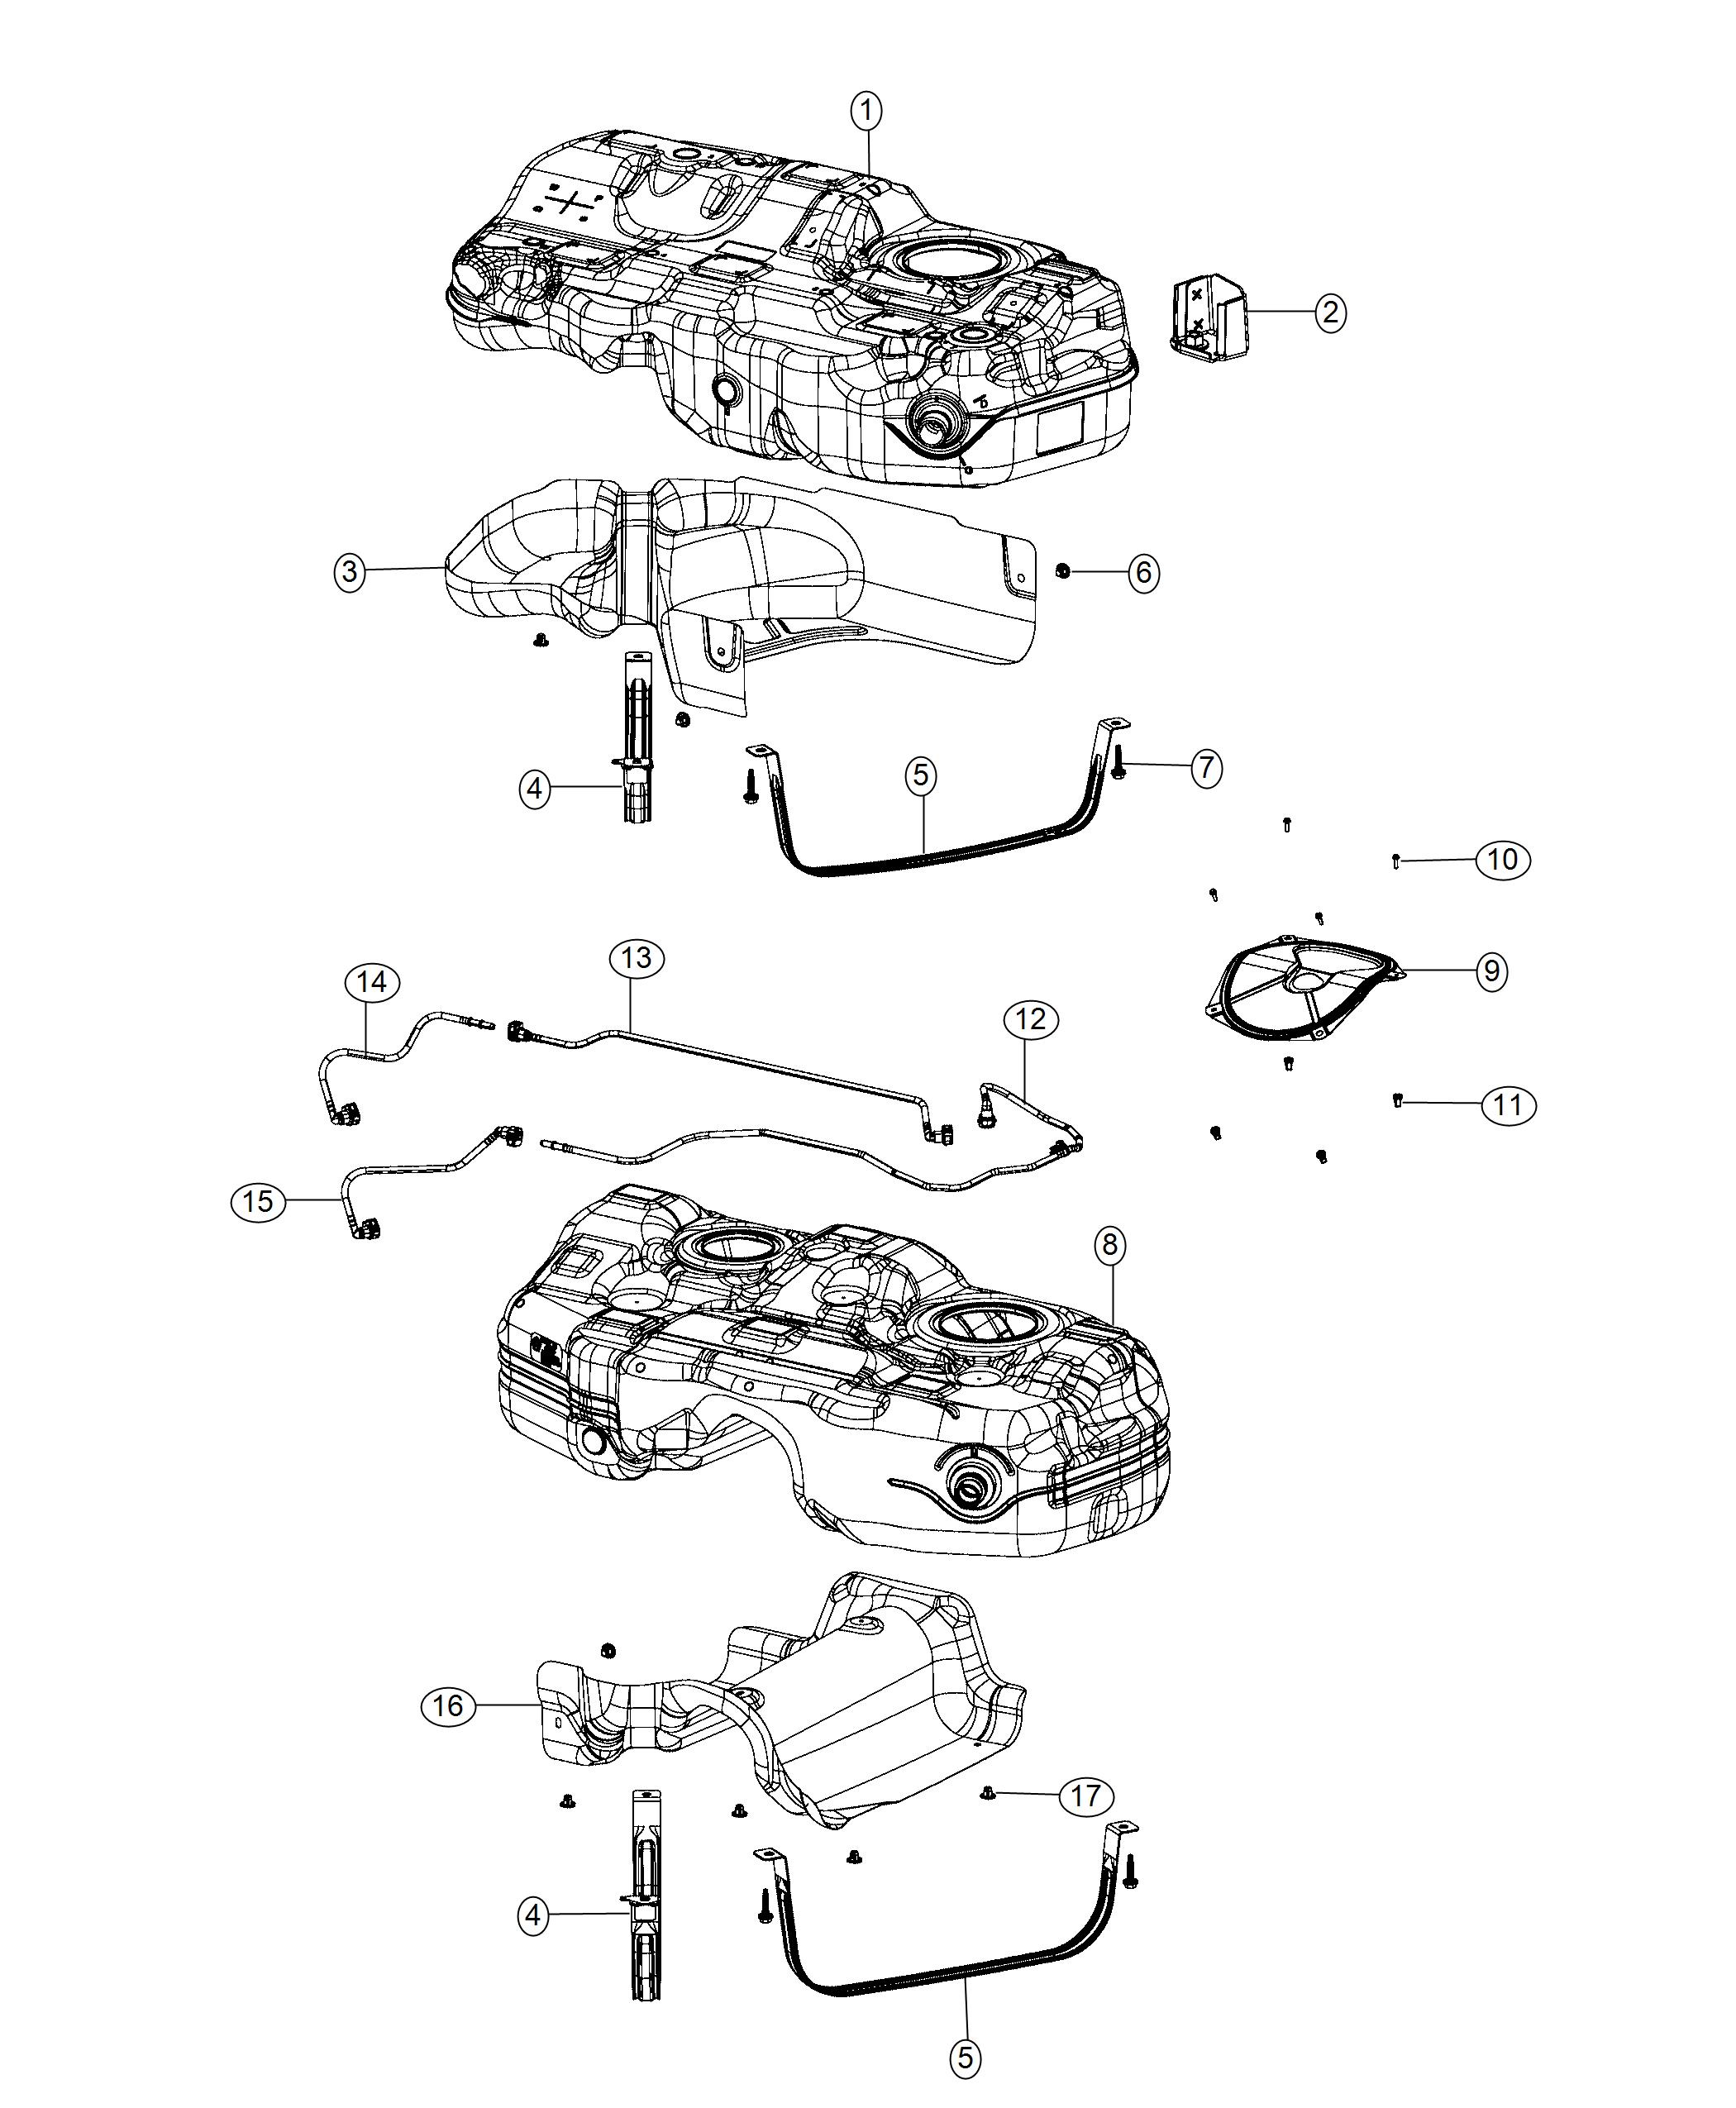 Jeep Cherokee Tank Fuel Pzev System Gallons